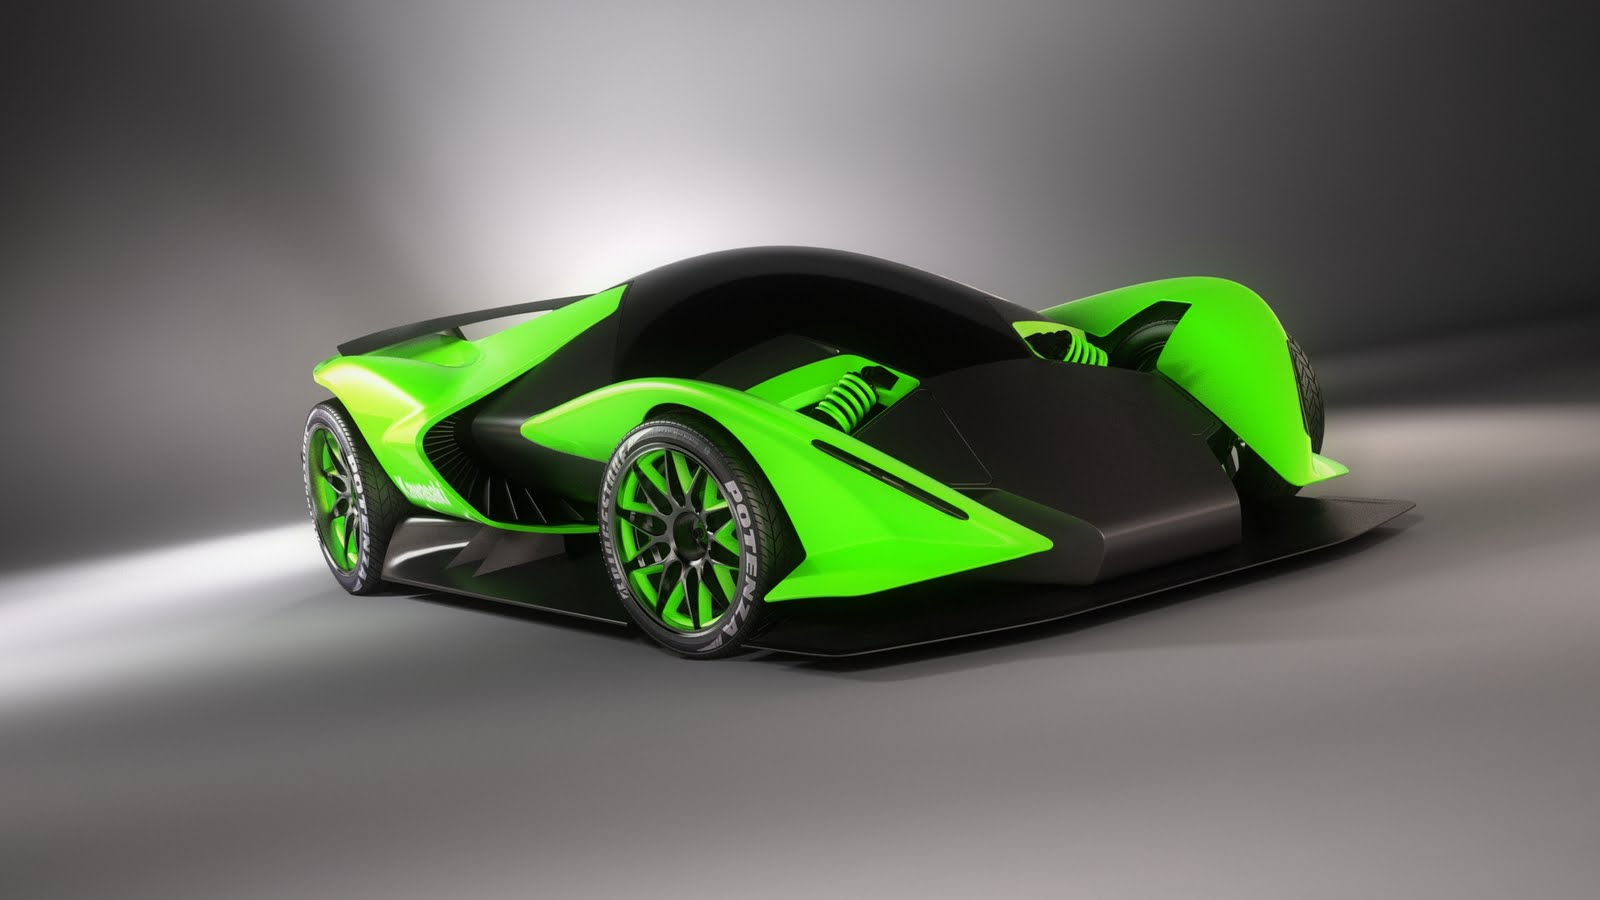 2011 Kawasaki ZX 770R Concept 1 2011 Kawasaki ZX 770R Concept to Be Upgraded Based on KTM X BOW